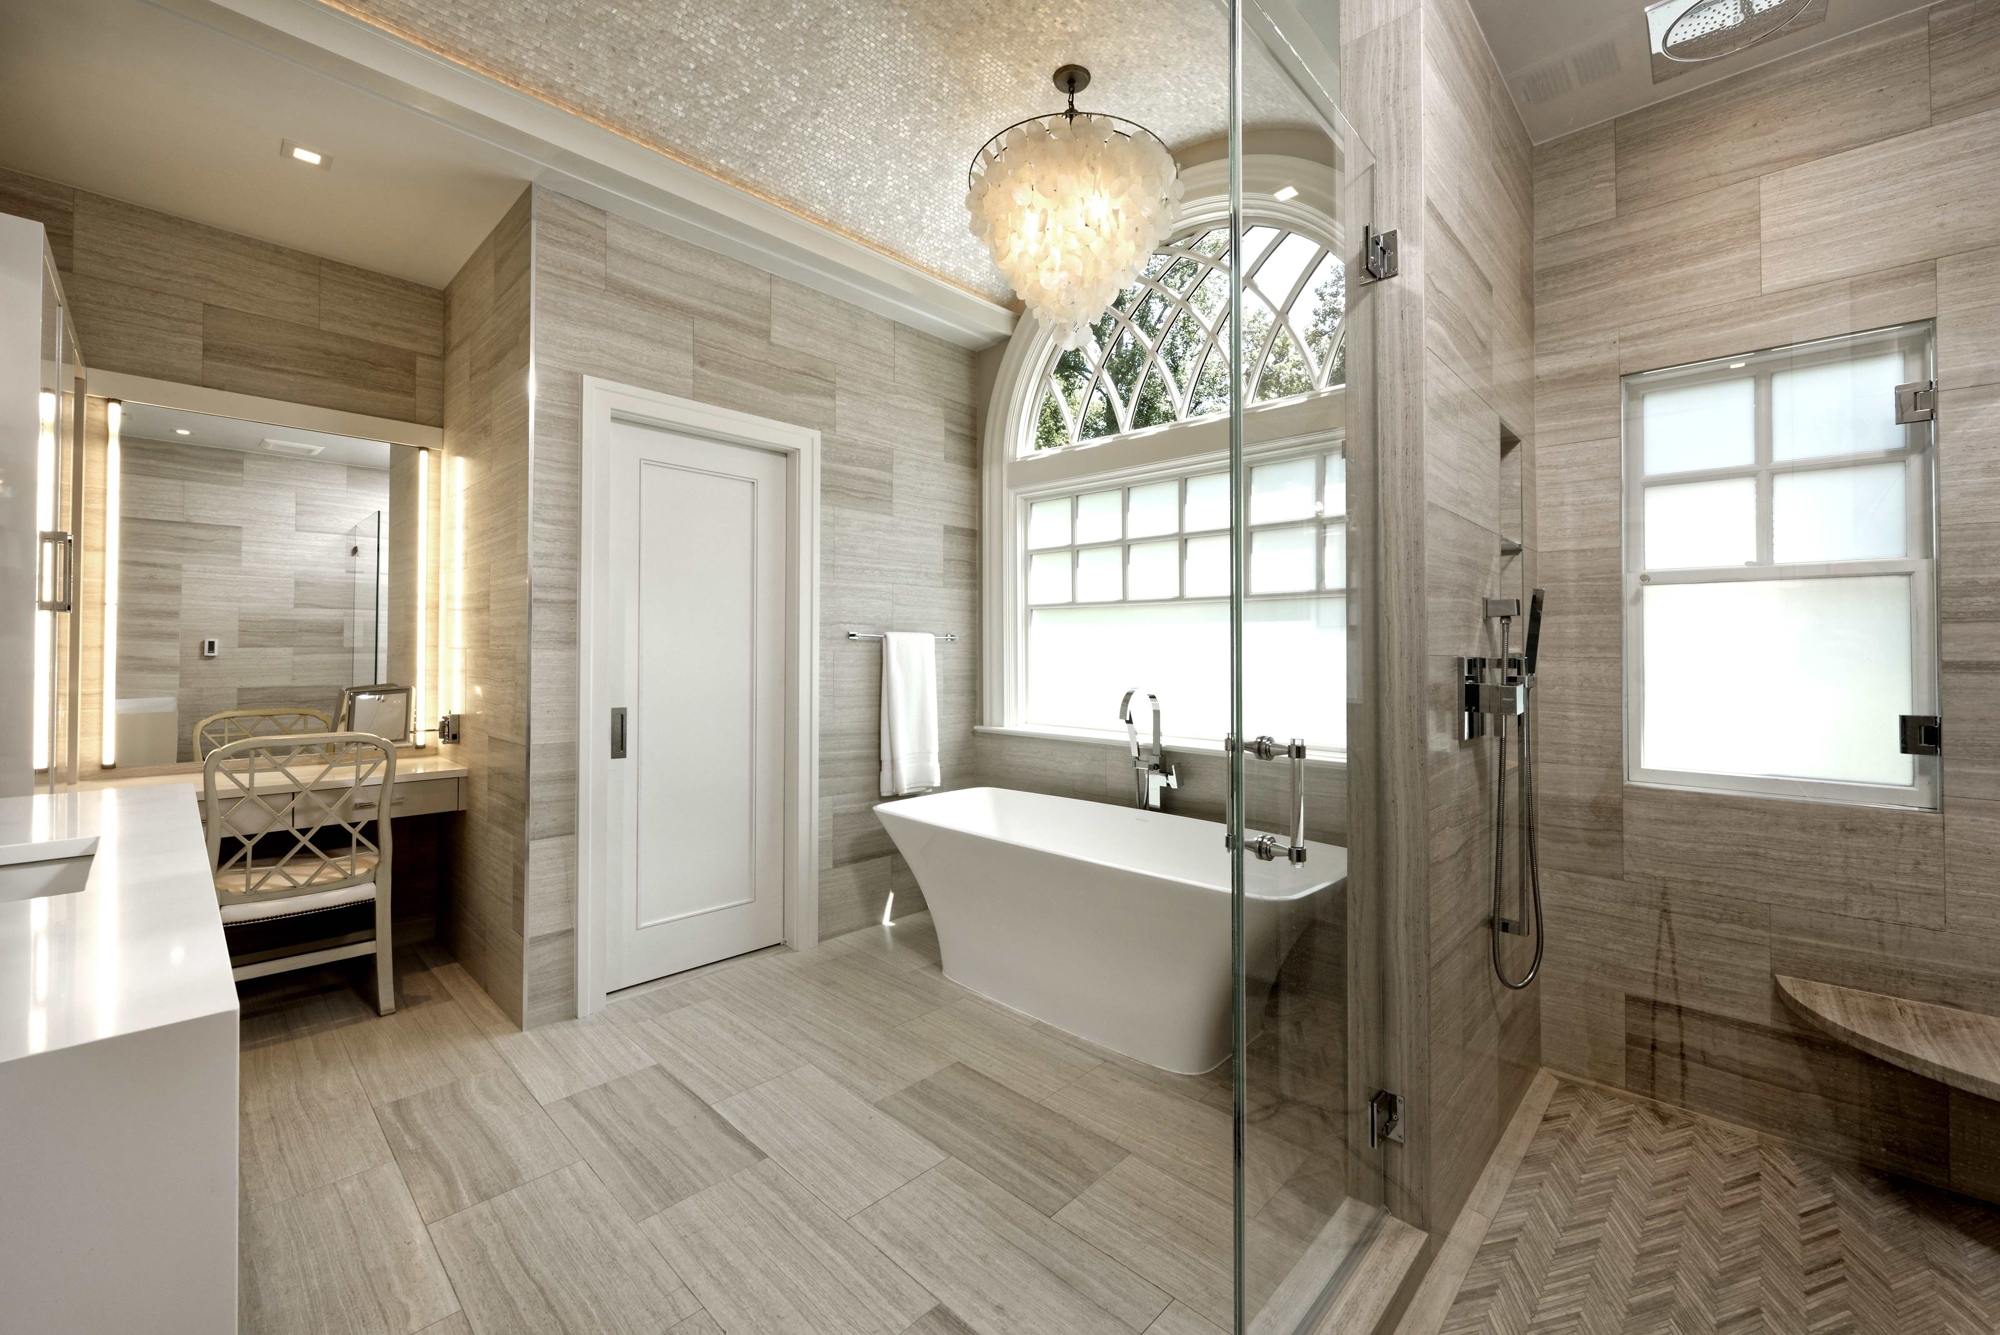 Modern Luxury Kitchen Master Bath And Basement Remodel In Mclean